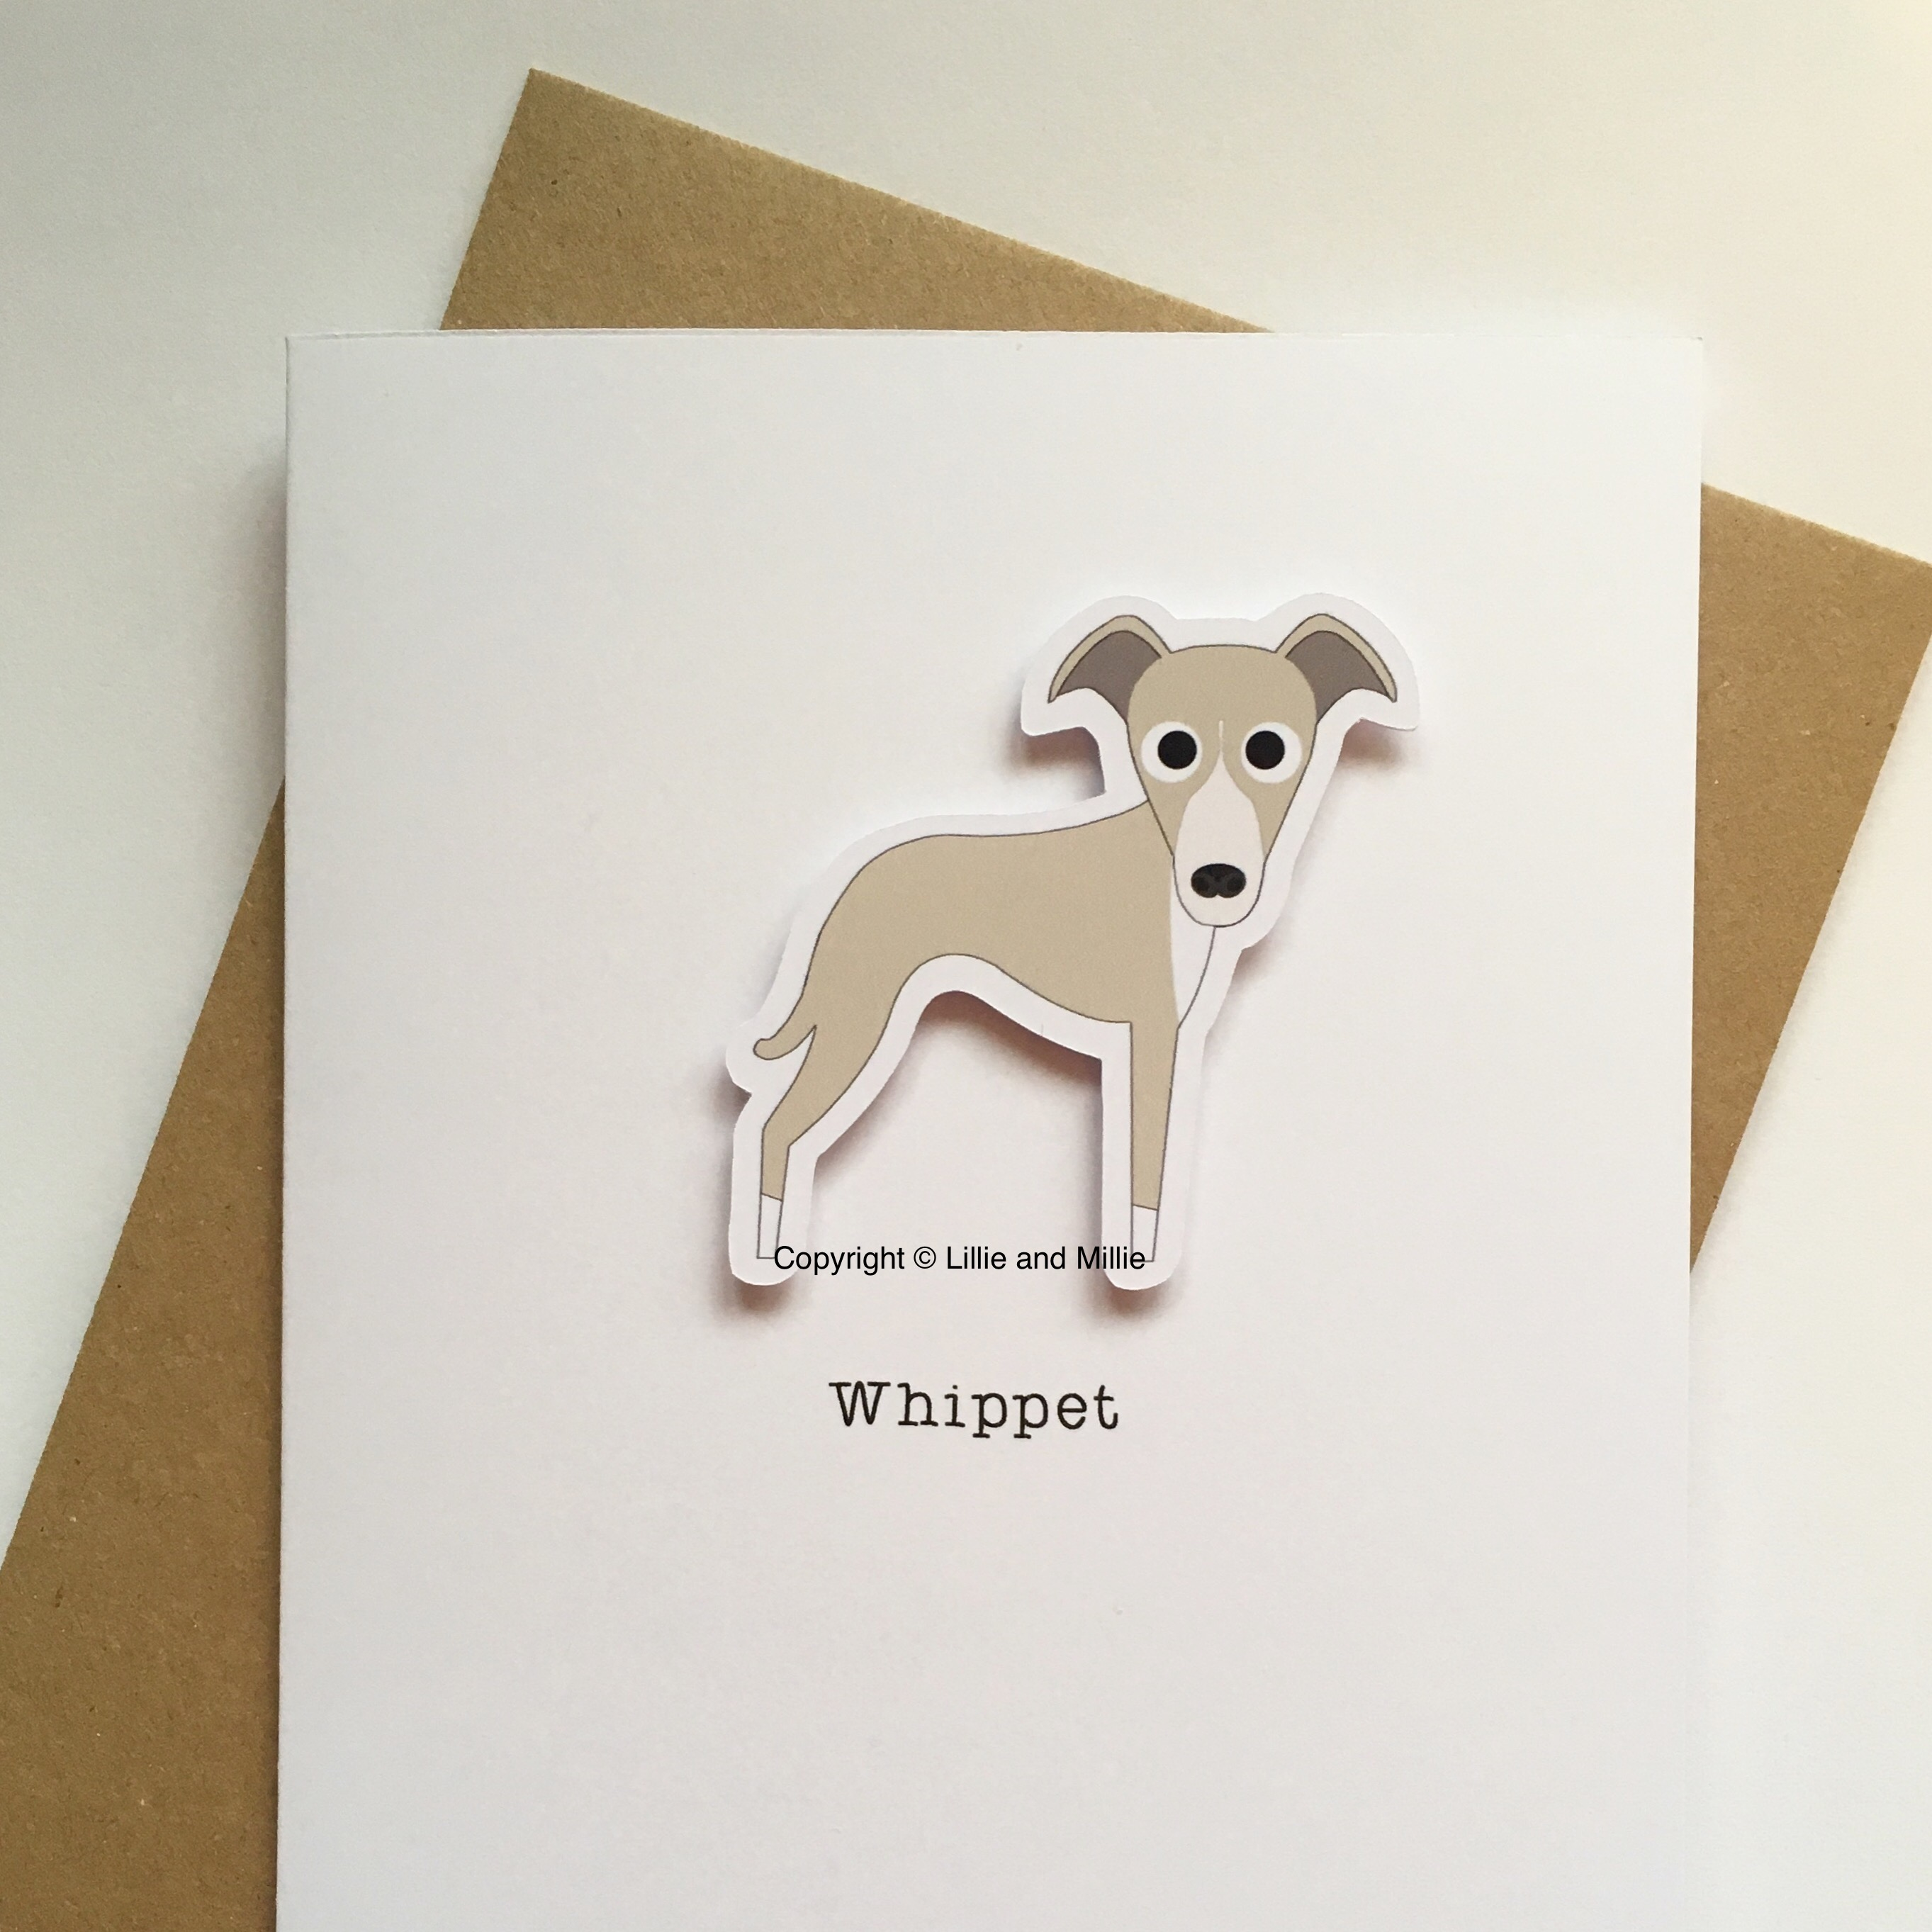 Cute and Cuddly Whippet Greetings Card